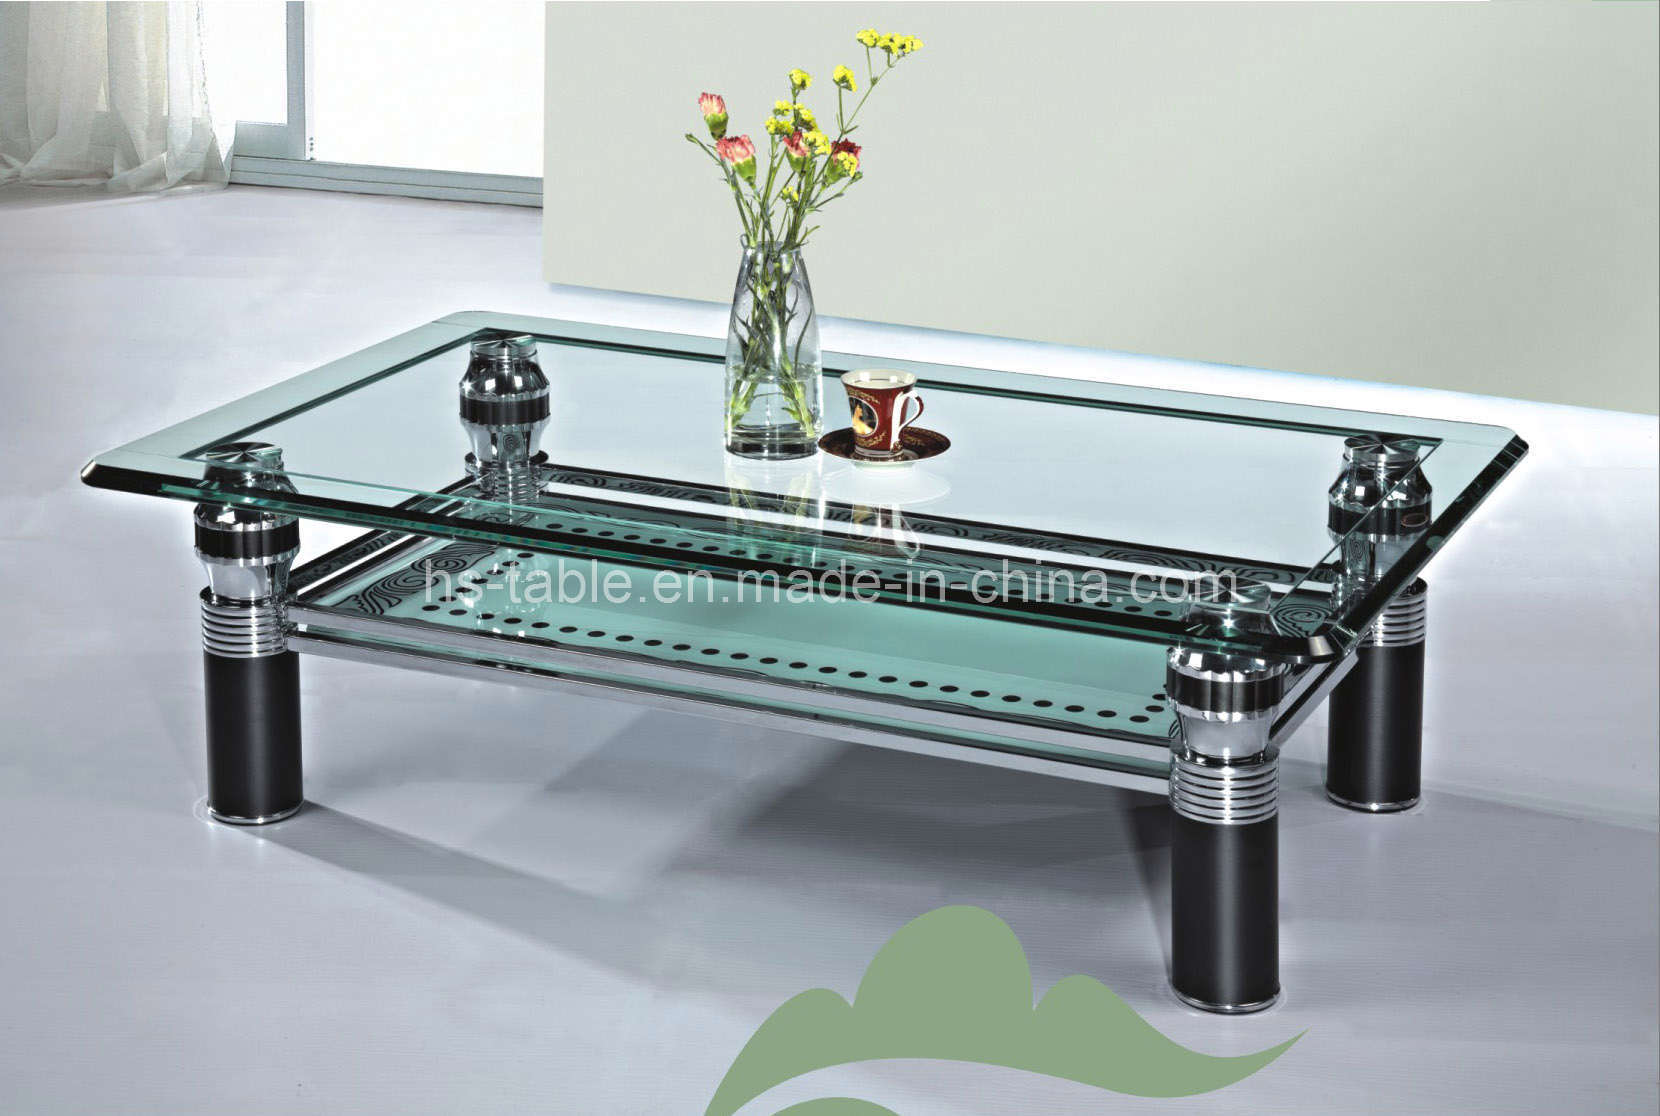 China glass furniture coffee table